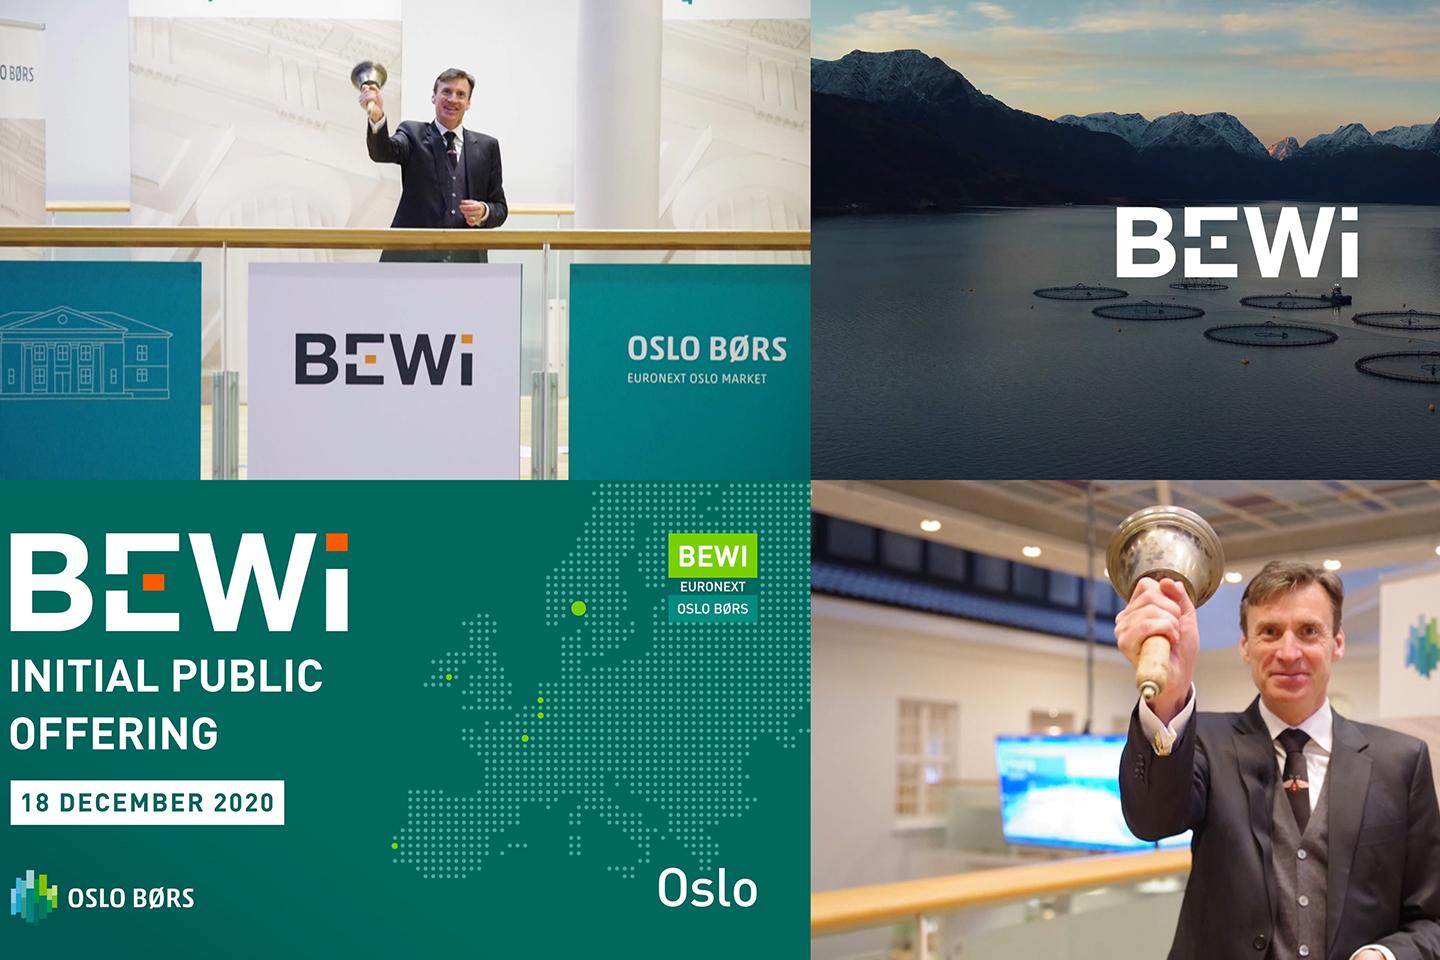 BEWi listed on Oslo Børs